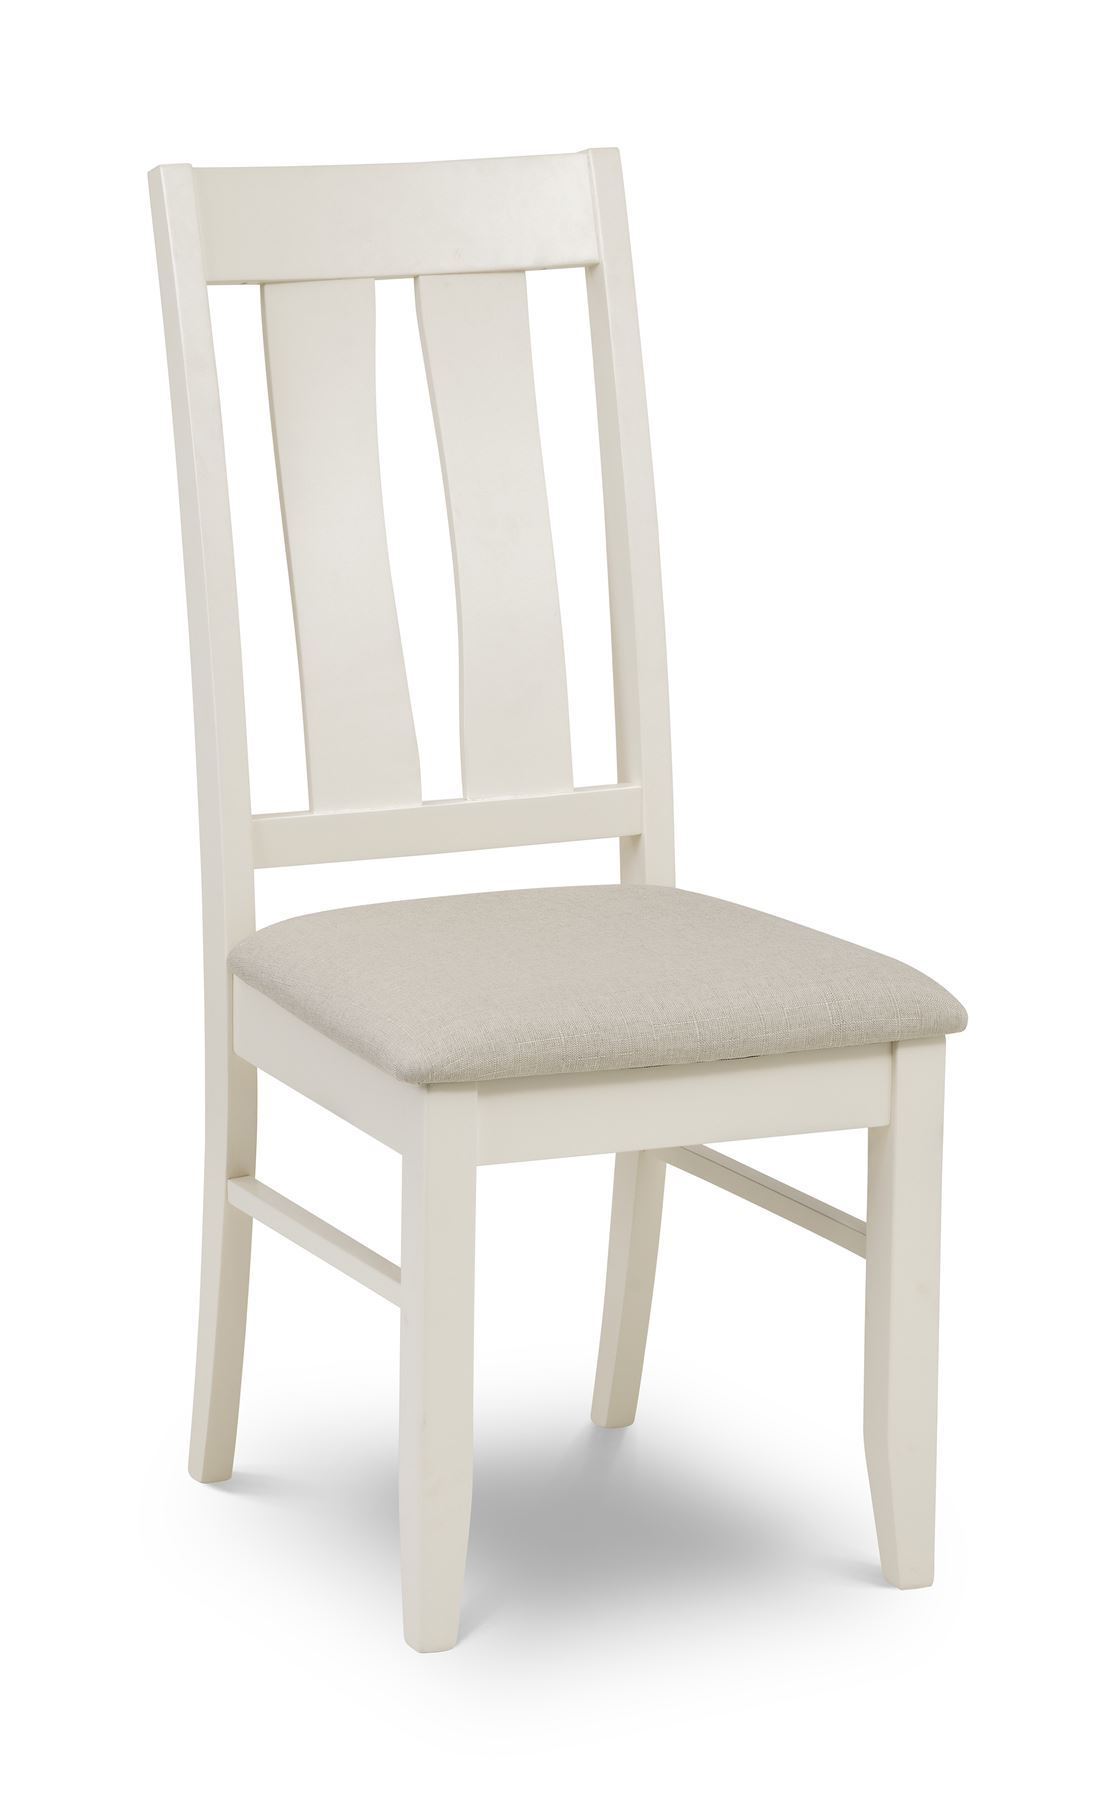 2 X Julian Bowen Pembroke Dining Chair Only ivory